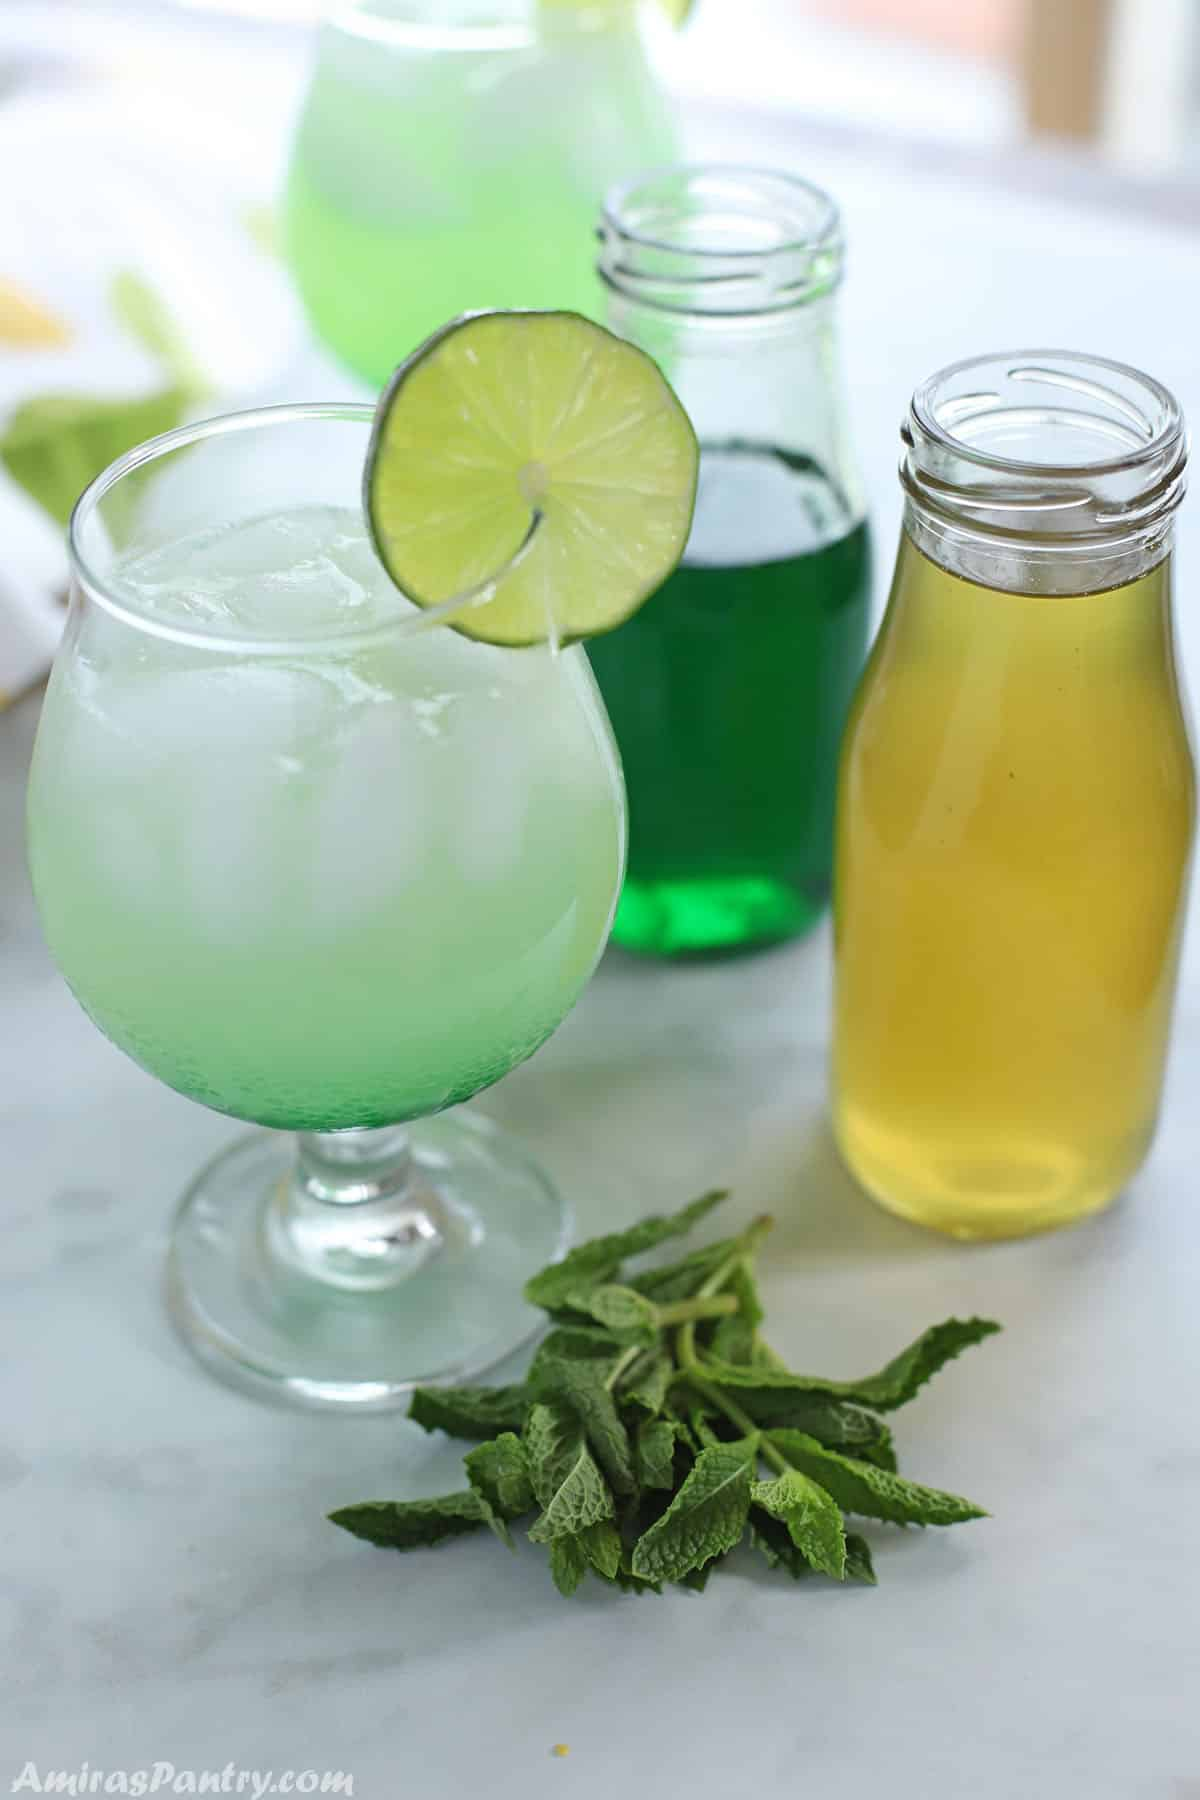 A glass of cold lemonade with green mint syrup at the bottom waiting to be stirred in.